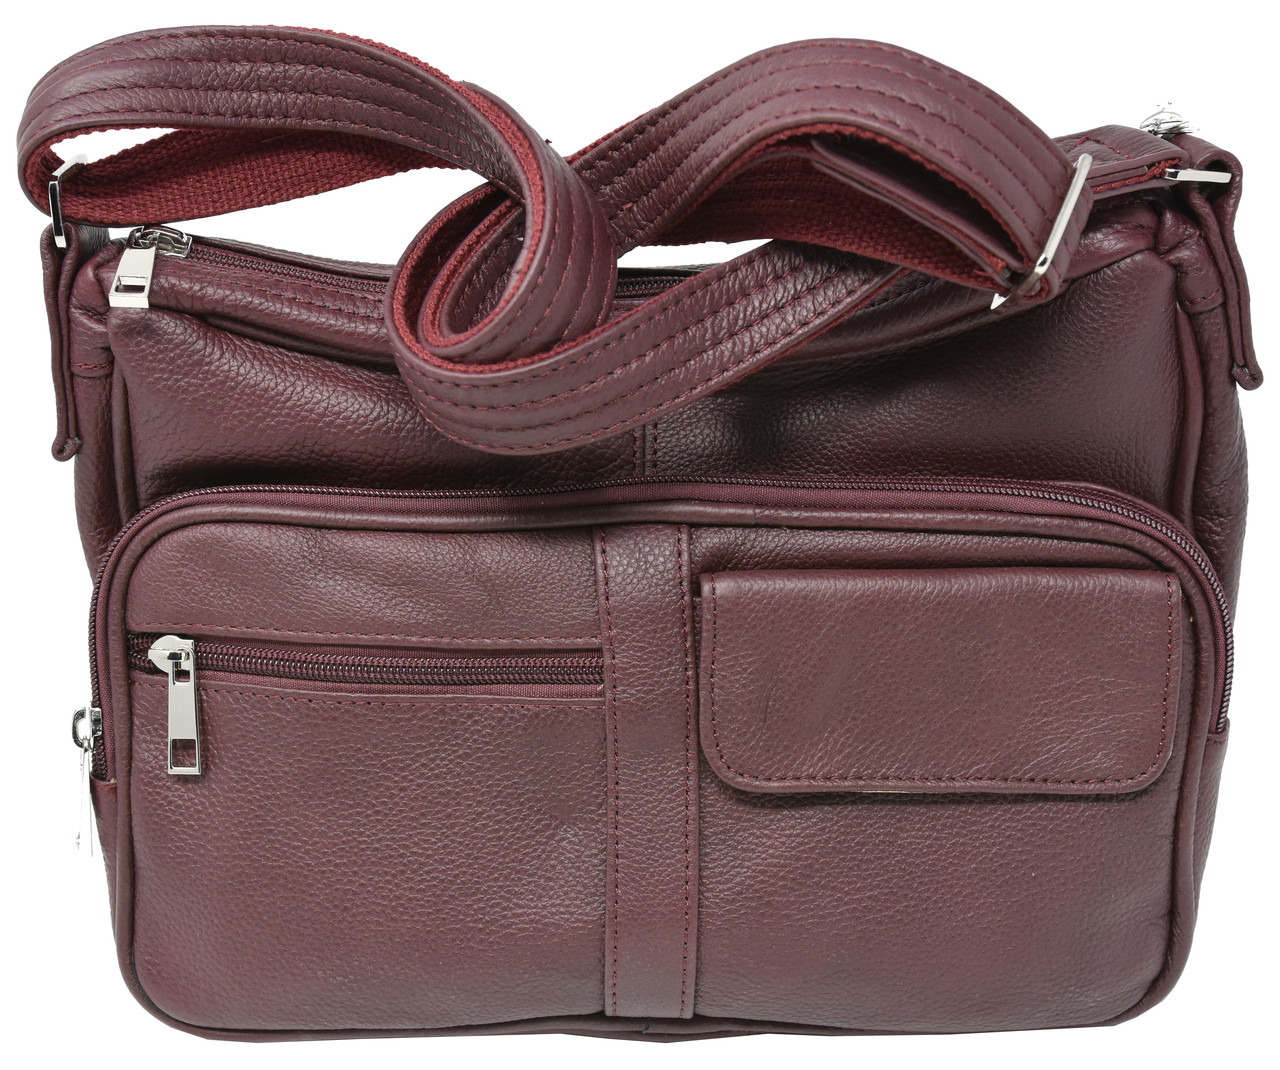 610dfdaac8ab Wine Crossbody or Shoulder Carry Leather Locking Concealment Purse - CCW  Concealed Carry Gun Bag